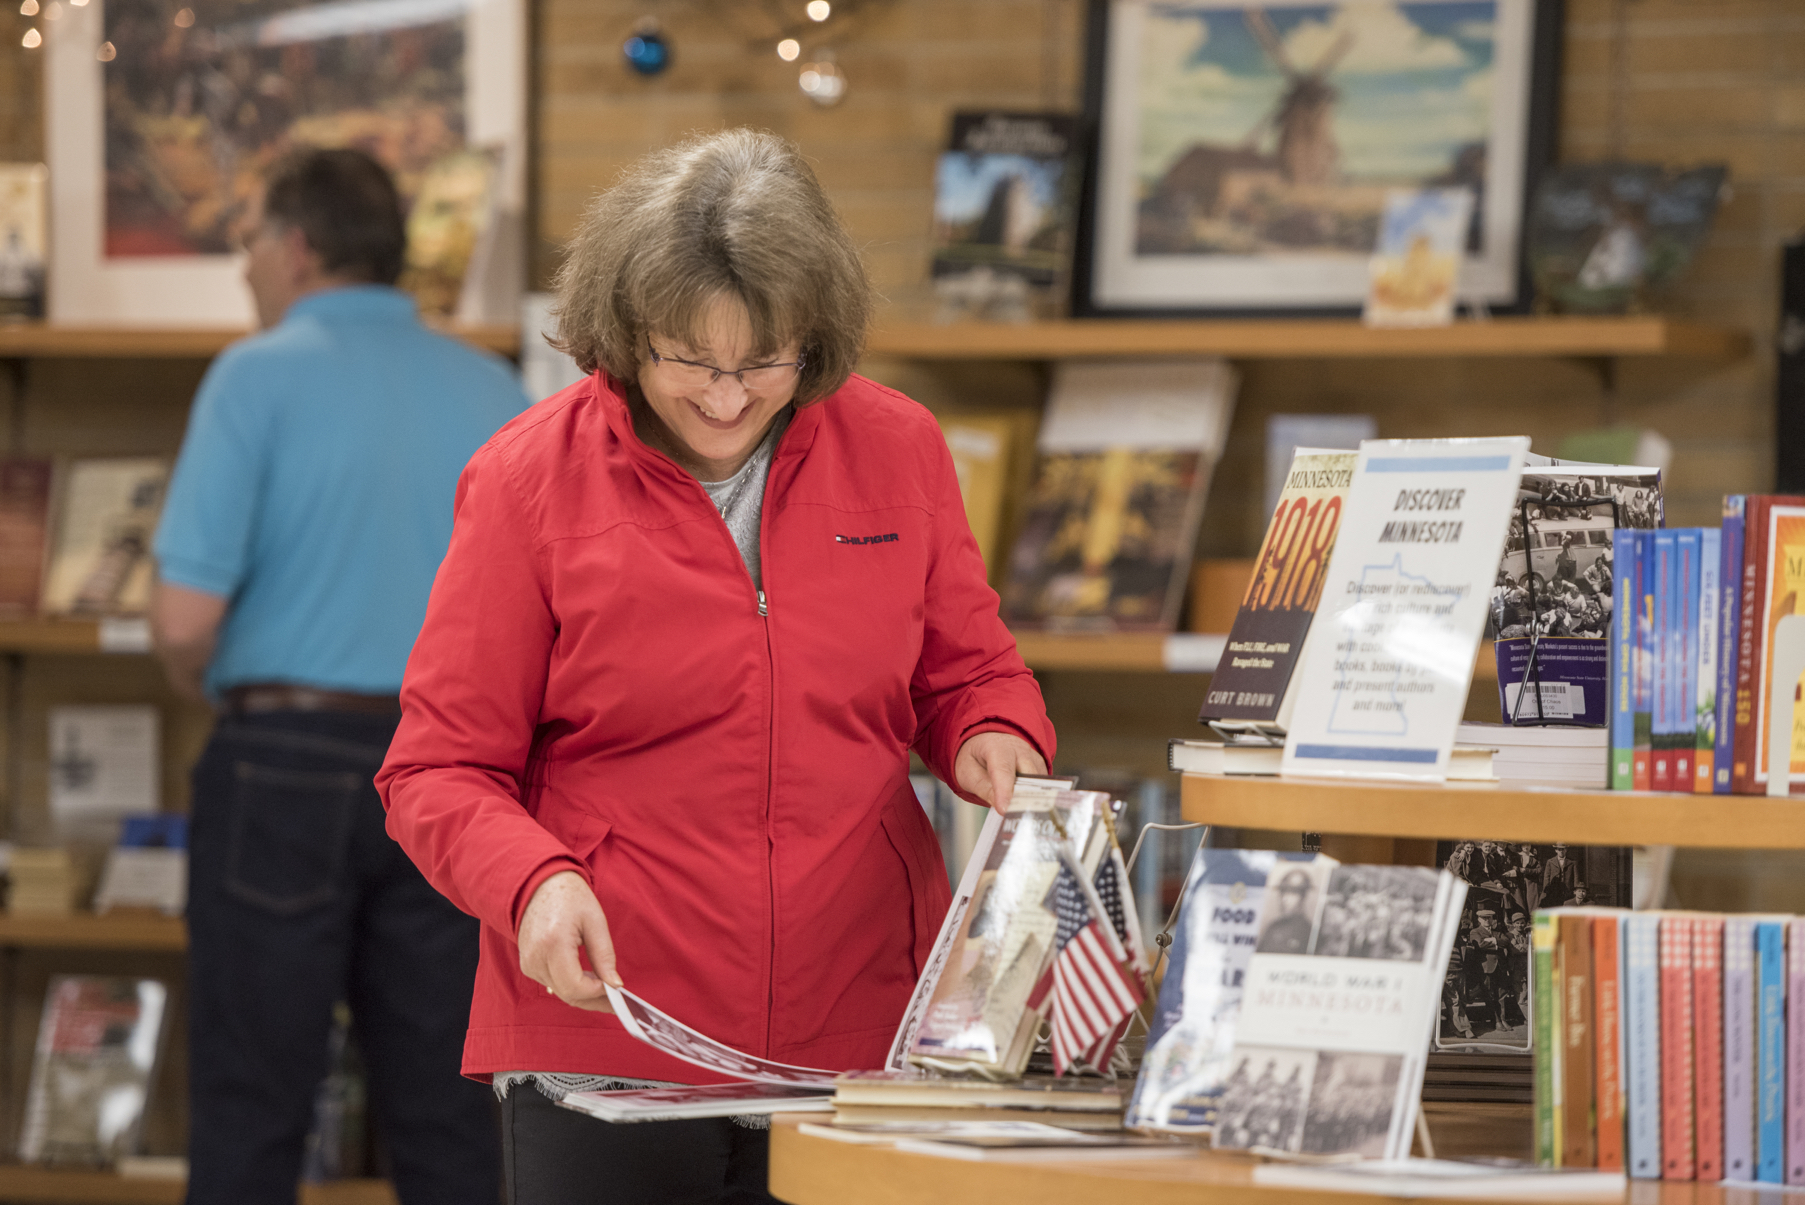 The Gift Shop at the Blue Earth County Historical Society in Mankato, Minnesota